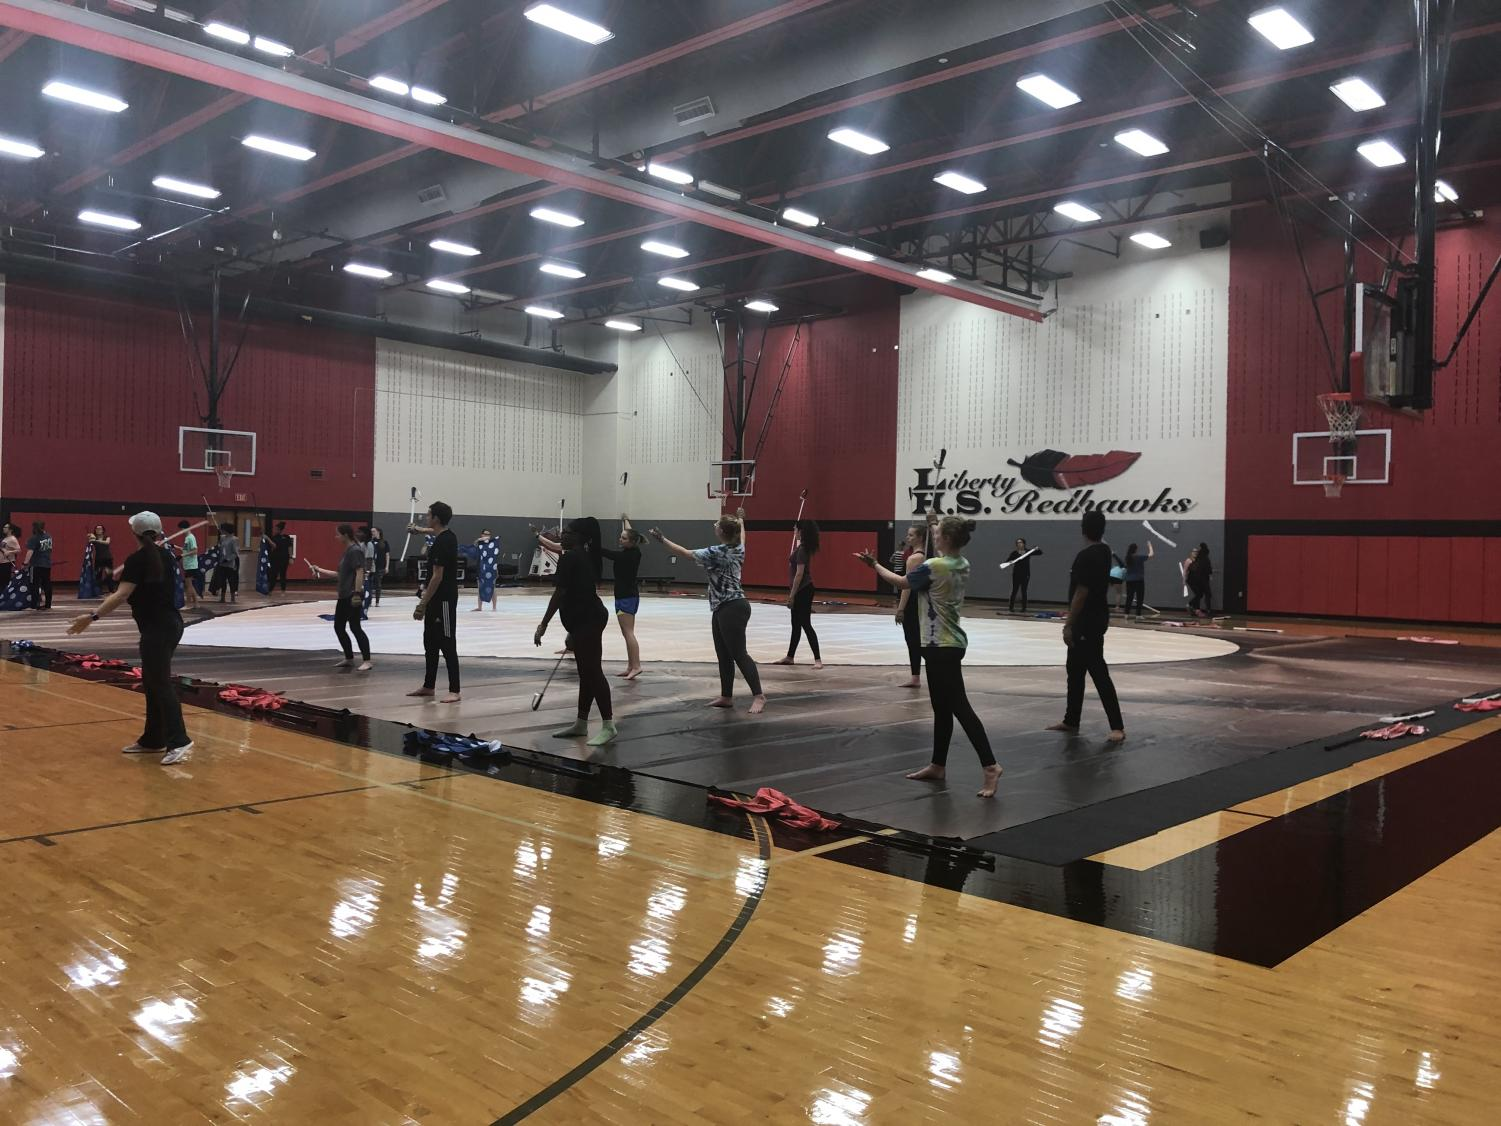 After weeks of competition, varsity winter guard is taking a break. The team looks forward to improving their performance styles.